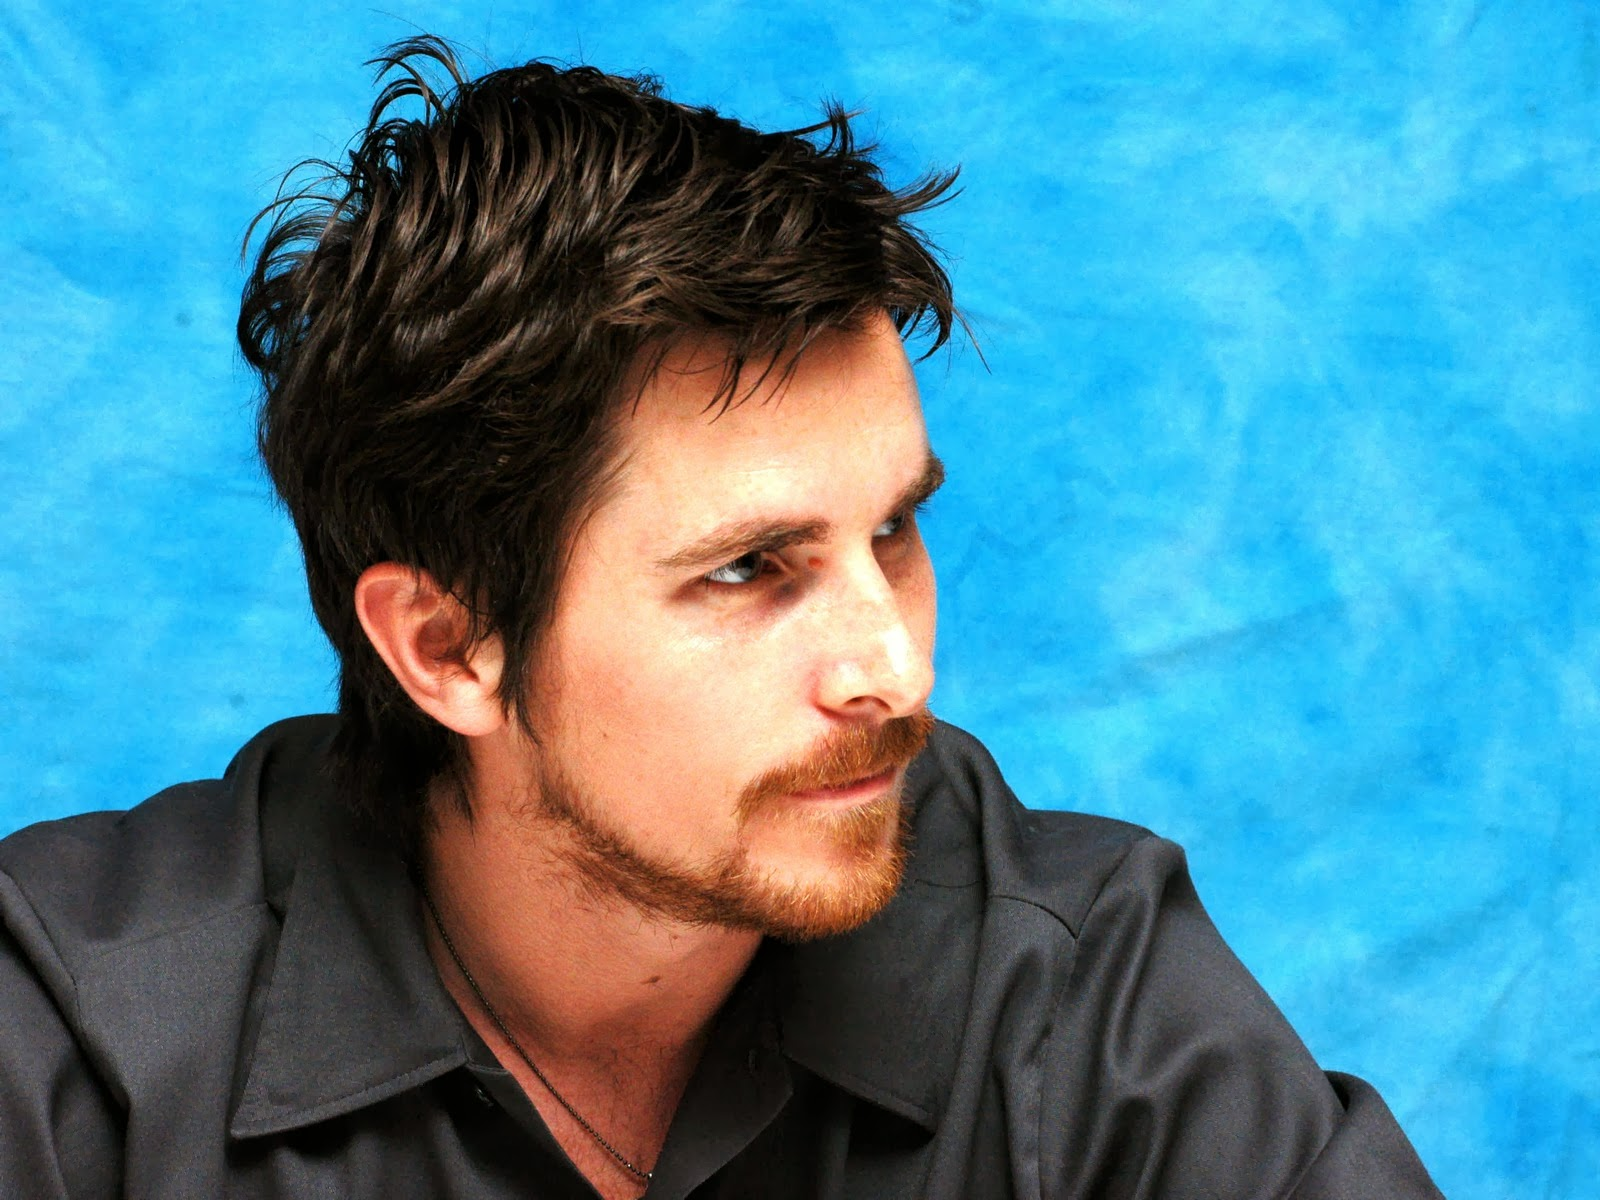 Christian Bale Profile Biodata Lengkap Bollywood and British Actor